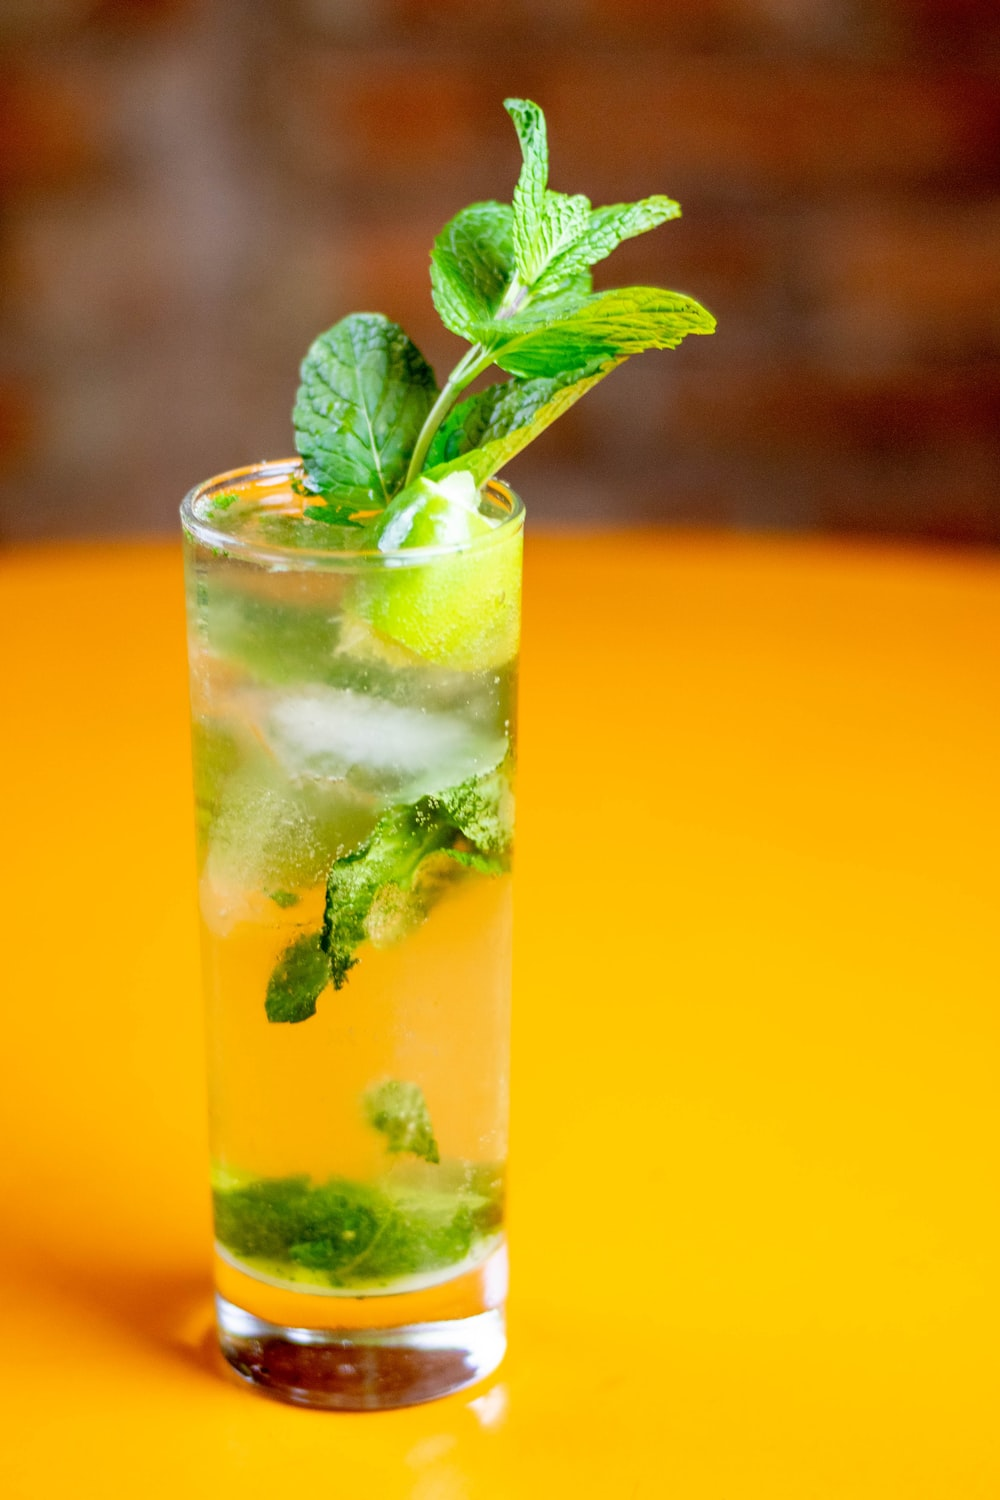 green leaf in clear drinking glass